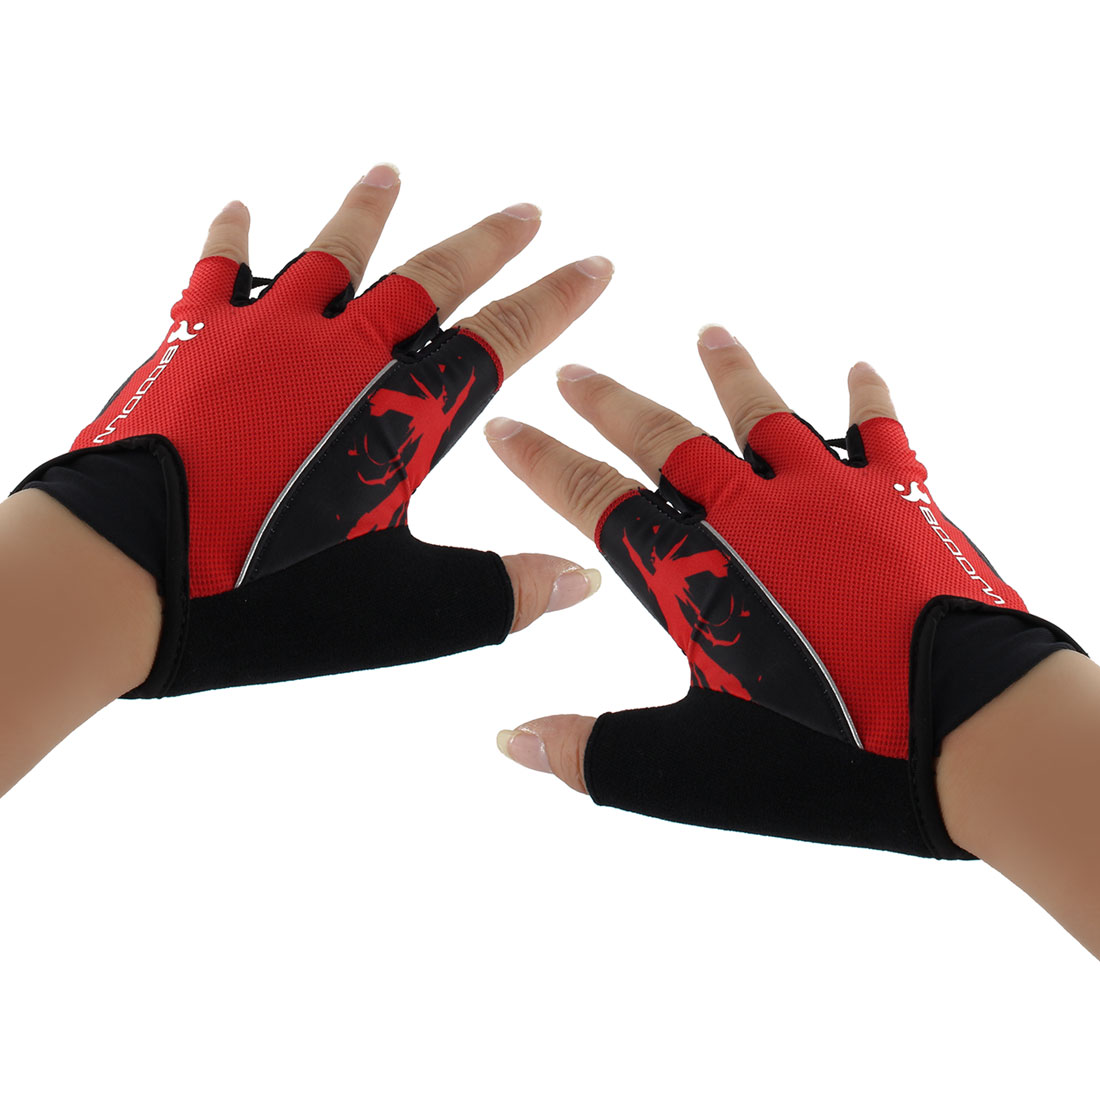 Polyester Exercise Sports Weightlifting Training Workout Protector Half Finger Fitness Gloves Red M Pair